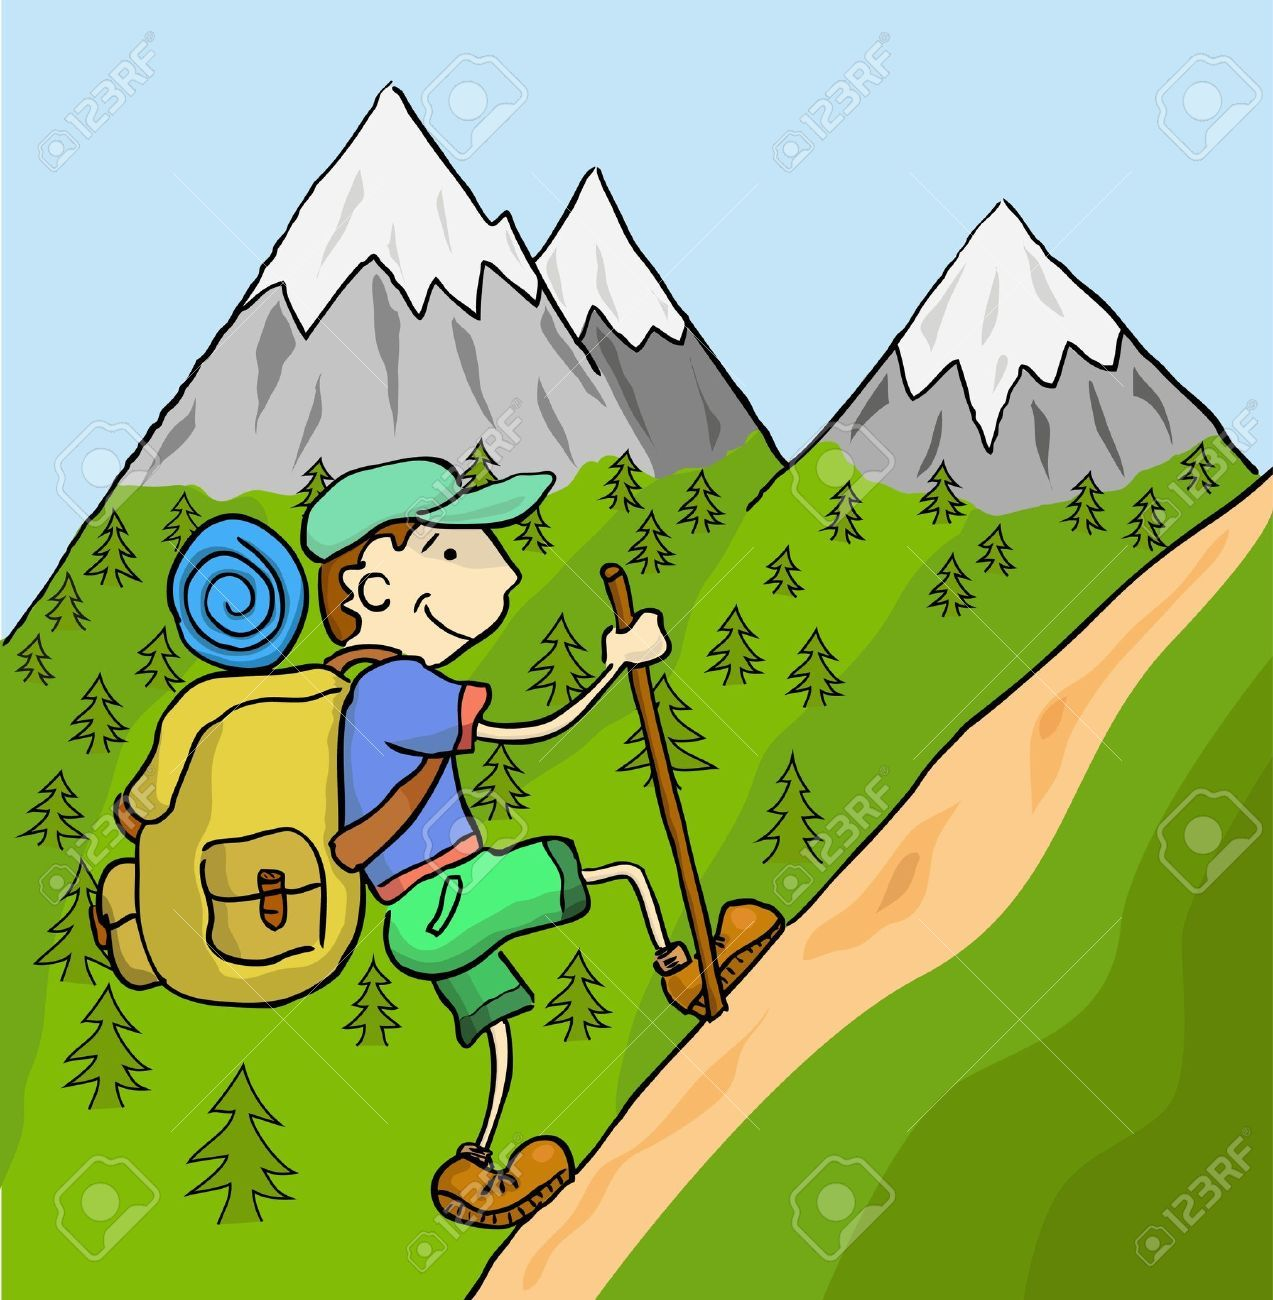 Climbing clipart mountain trail #345.